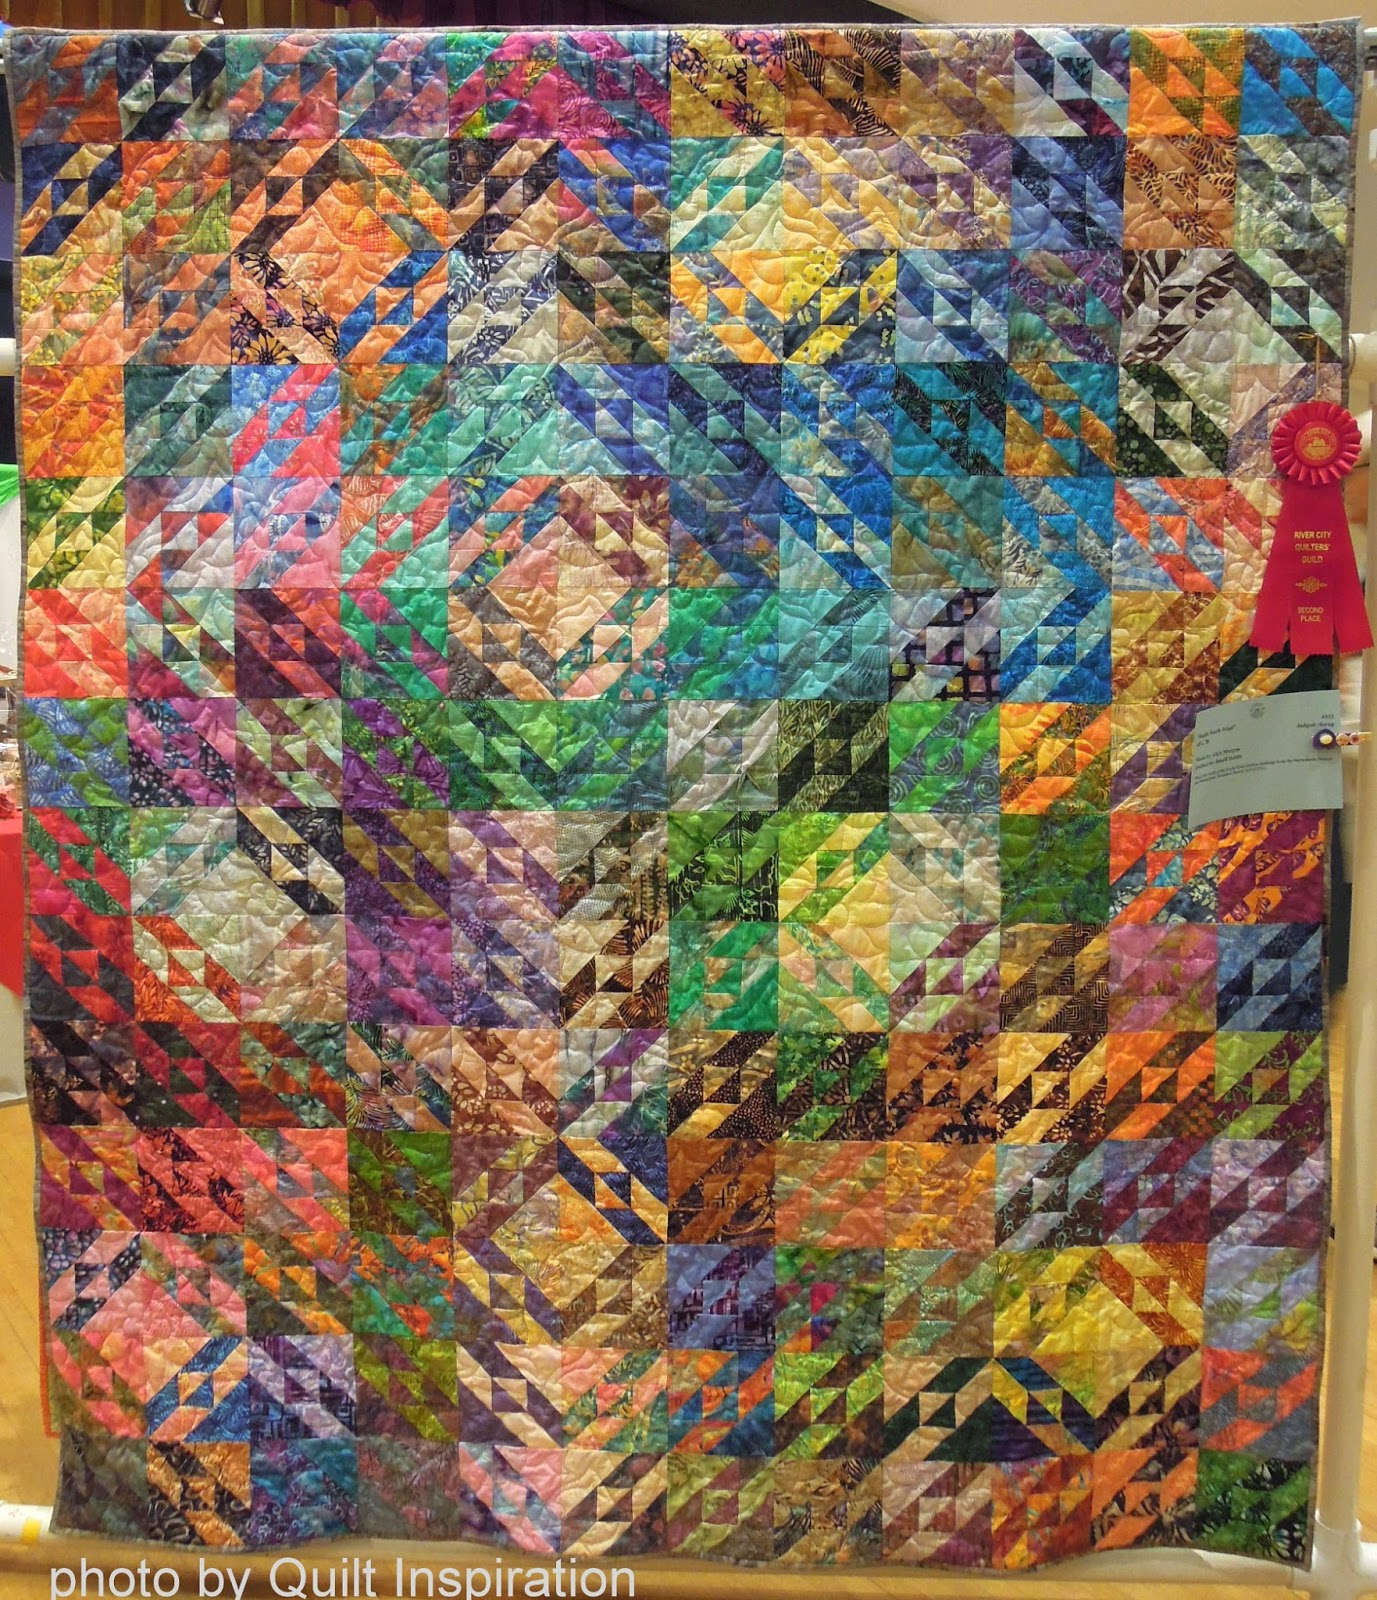 Quilt Inspiration Pieced Quilts Highlights Of The 2014